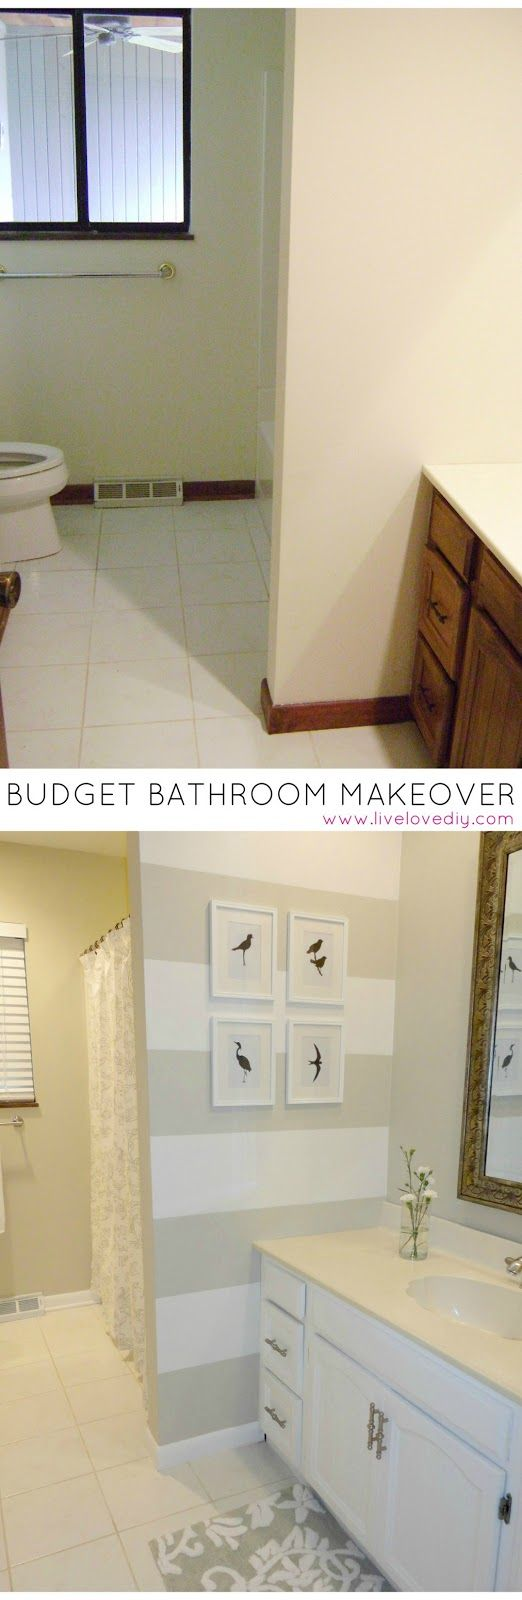 Budget Bathroom Makeover for under $200! Tons of great ideas for updating old bathrooms.